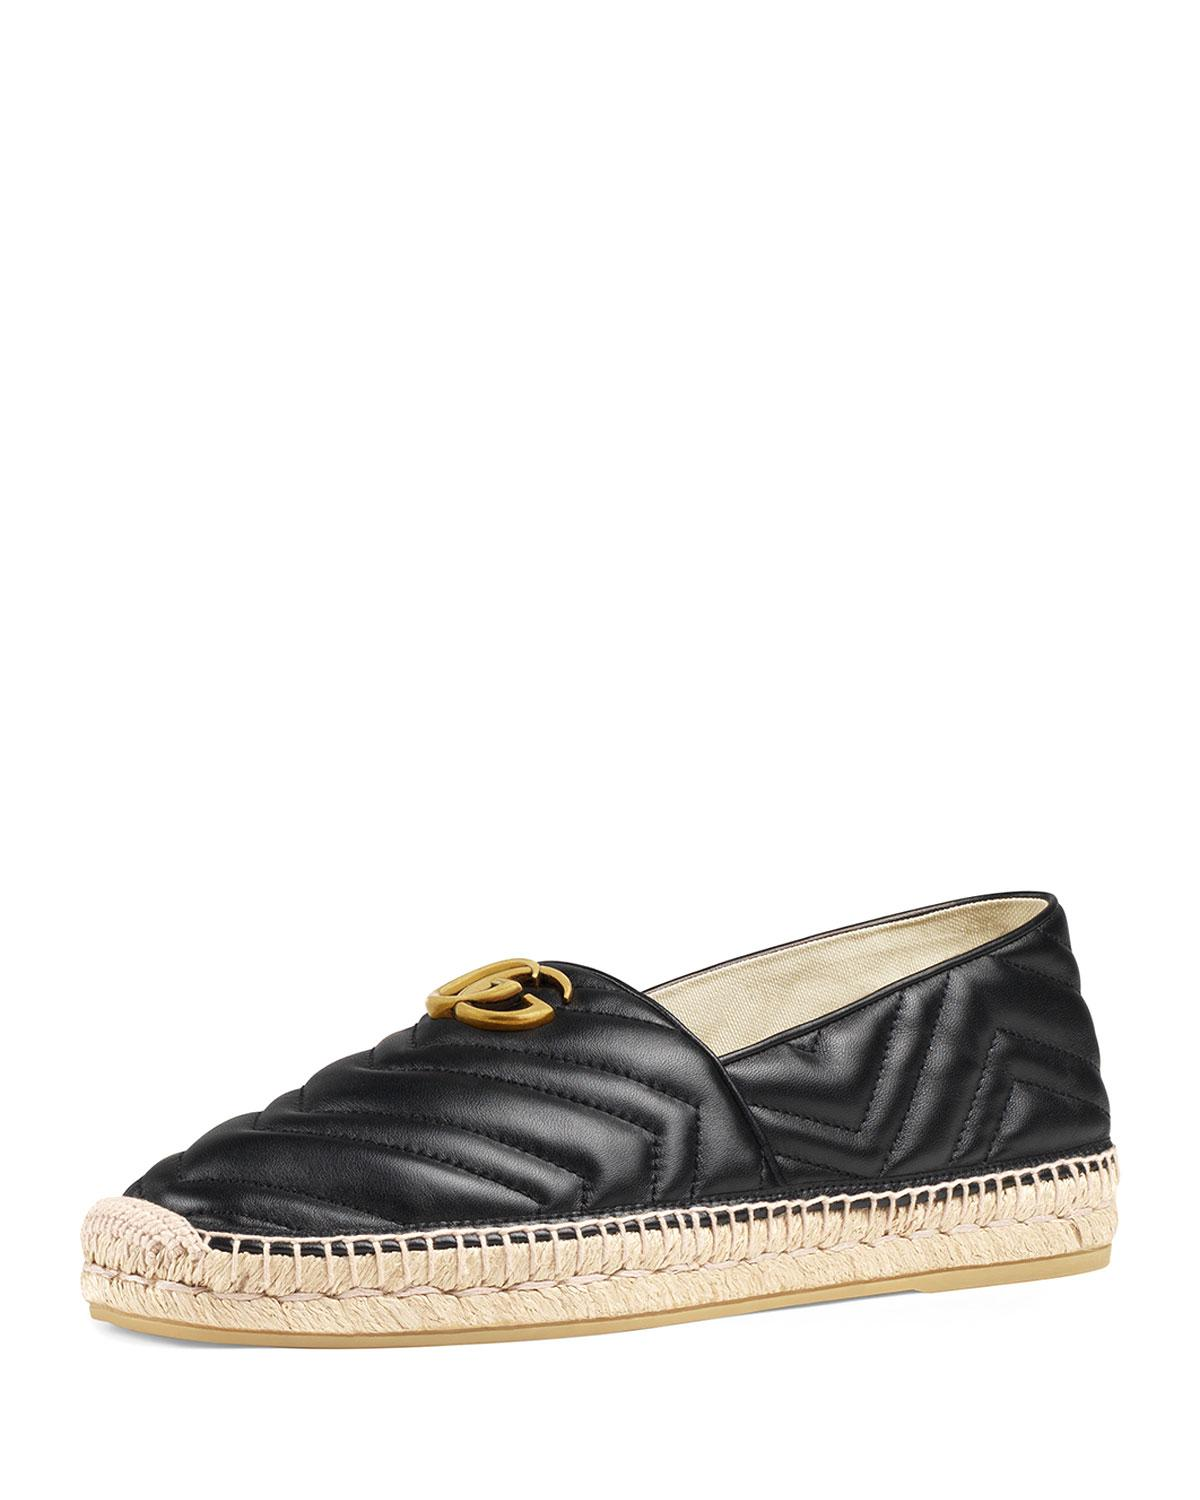 f282b9977 Gucci Men's Quilted Leather Espadrilles With Double G in Black - Lyst